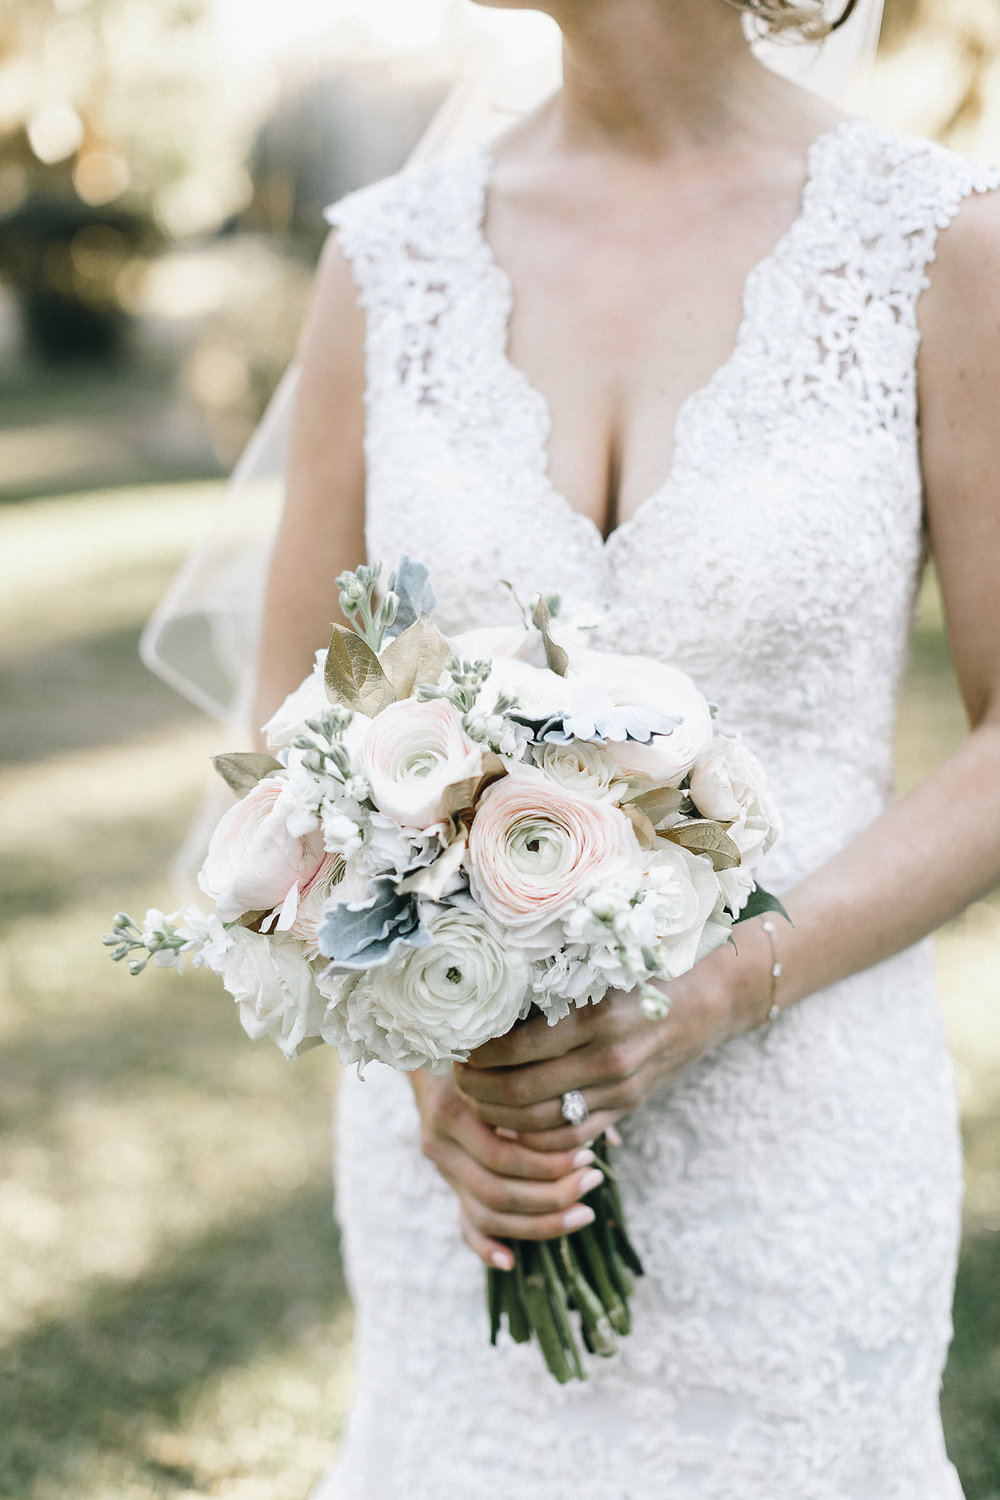 Ranunculus Bouquet by A to Zinnias at Savannah wedding